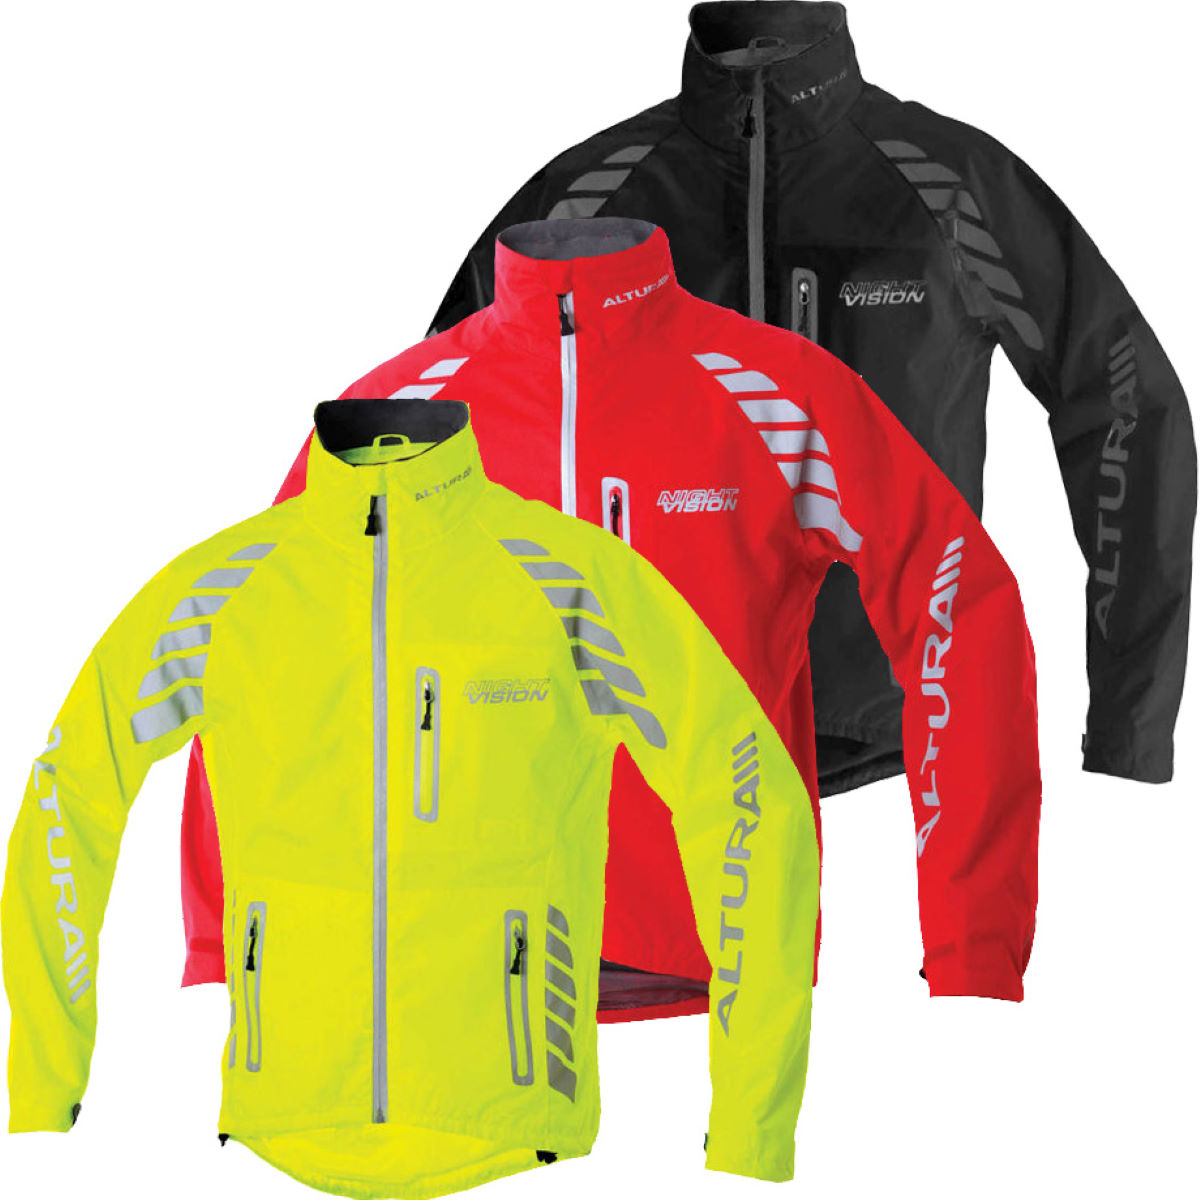 a1a4019b6 Altura Night Vision Evo Waterproof Cycling Jacket 2012